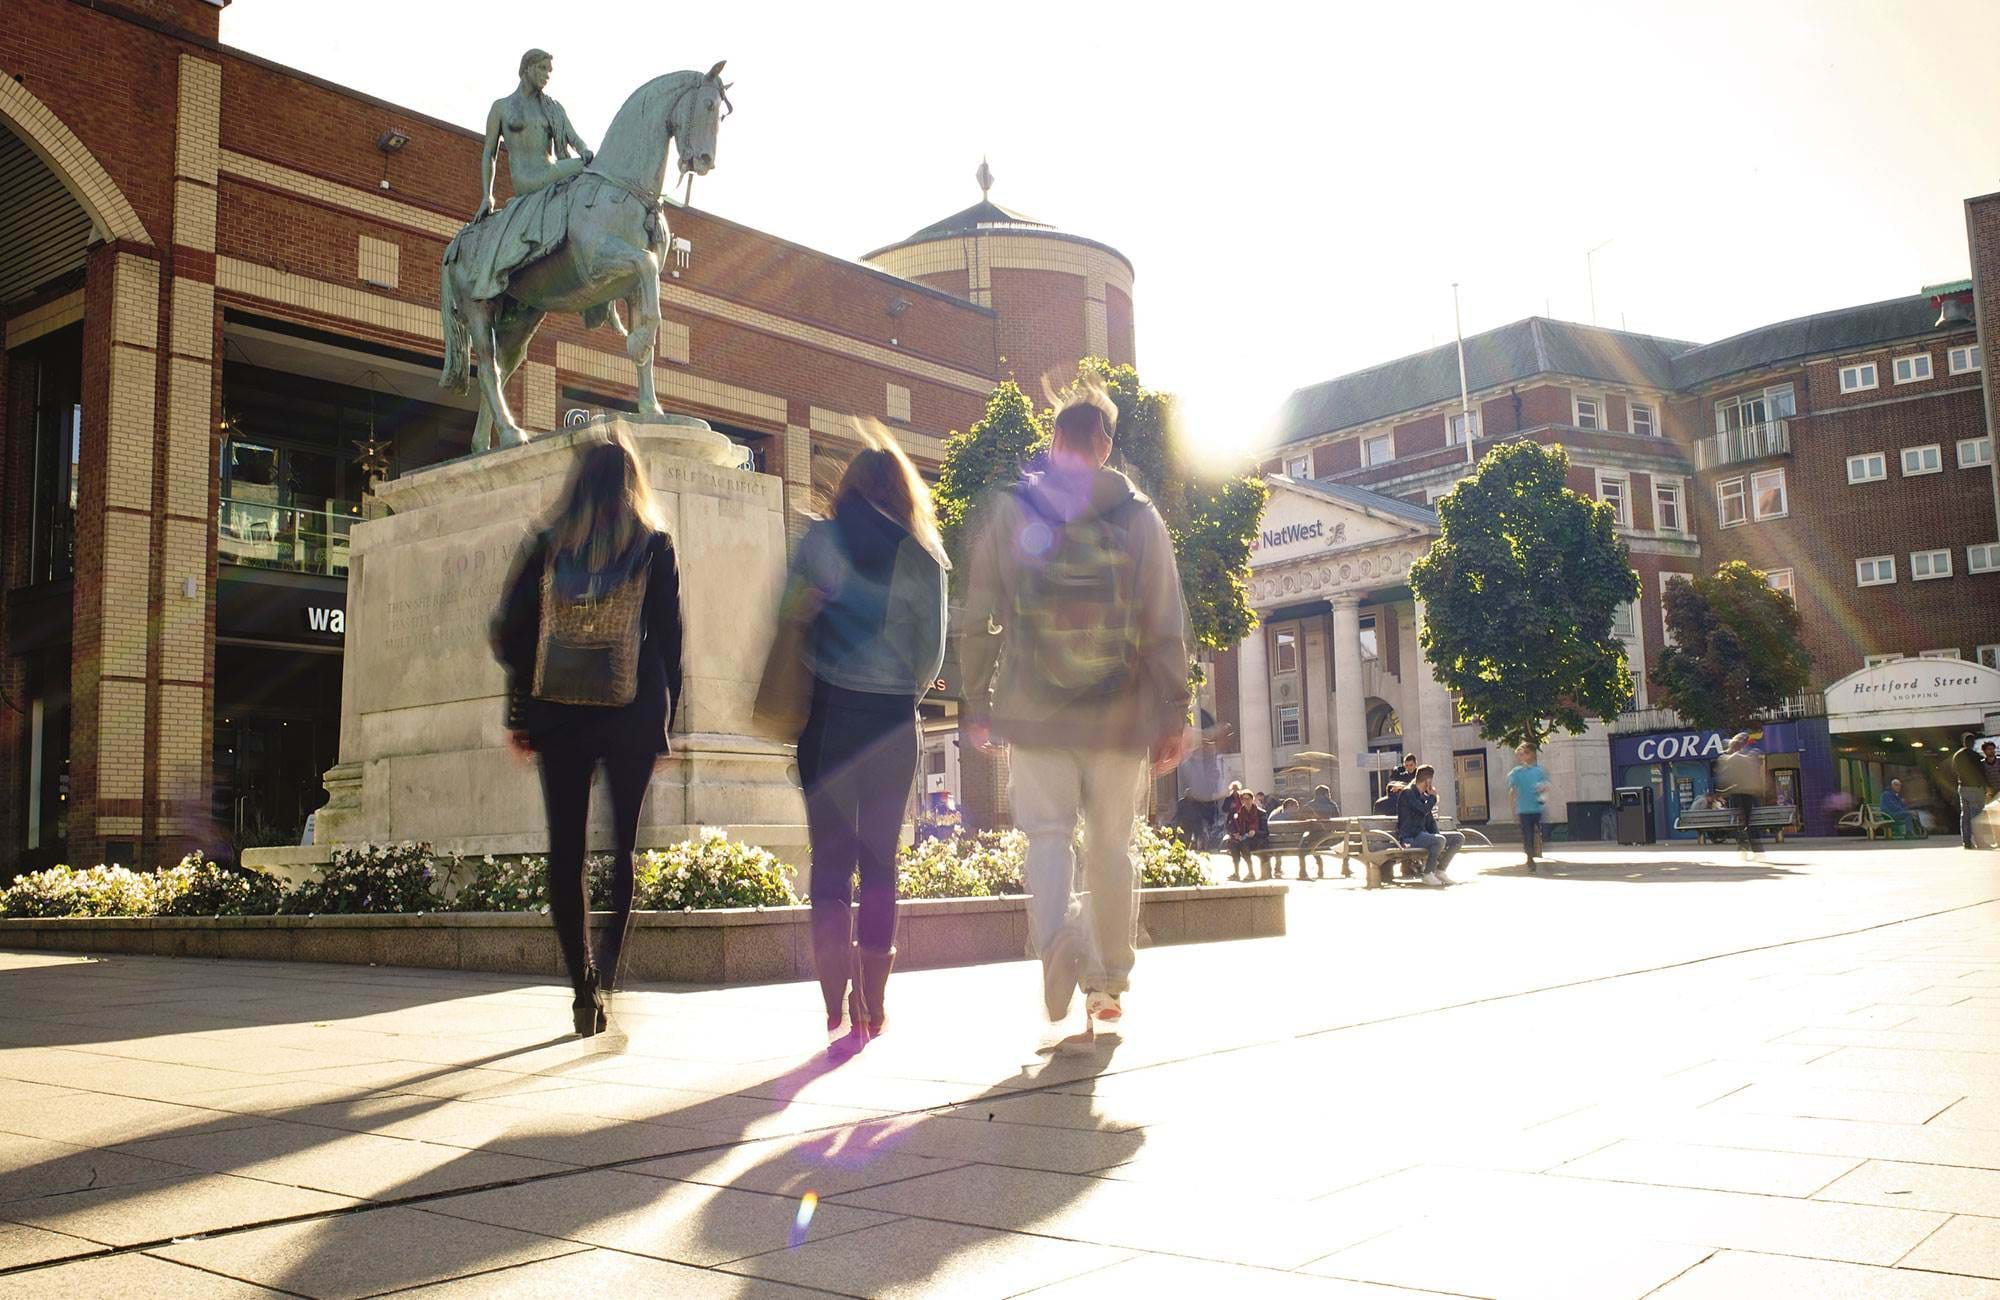 Students Walking On Campus Of Coventry University England (1)